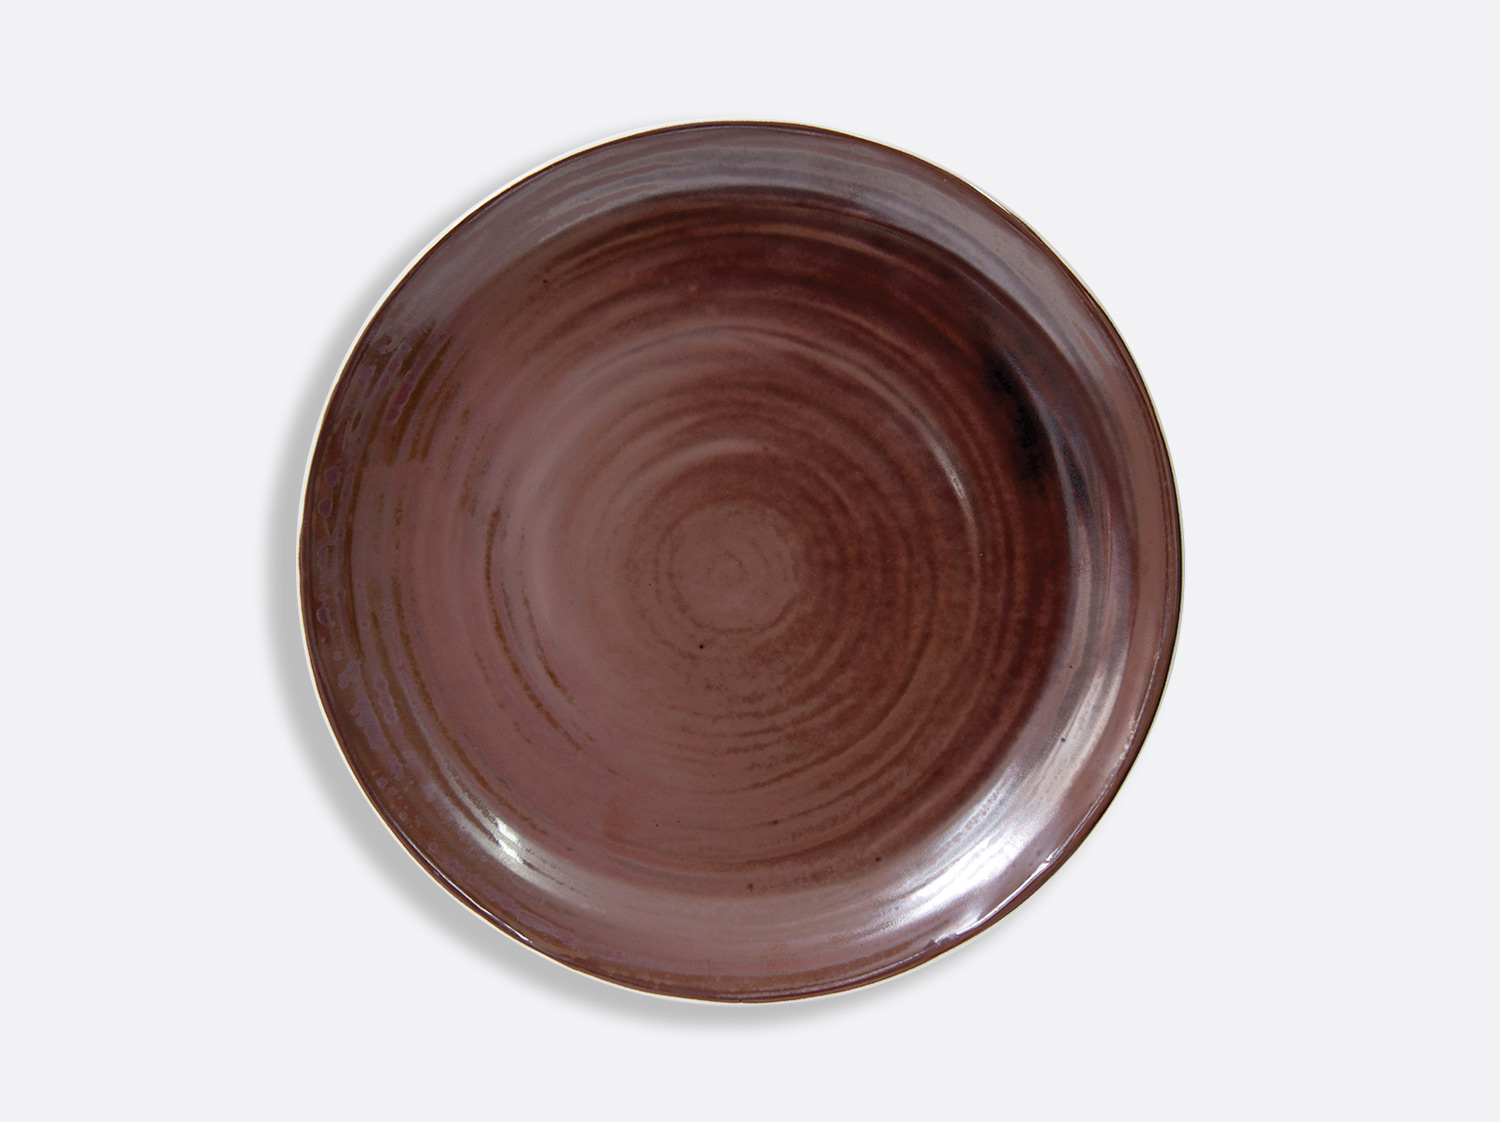 China Celsius Castanon plate 27 cm of the collection Castanon | Bernardaud